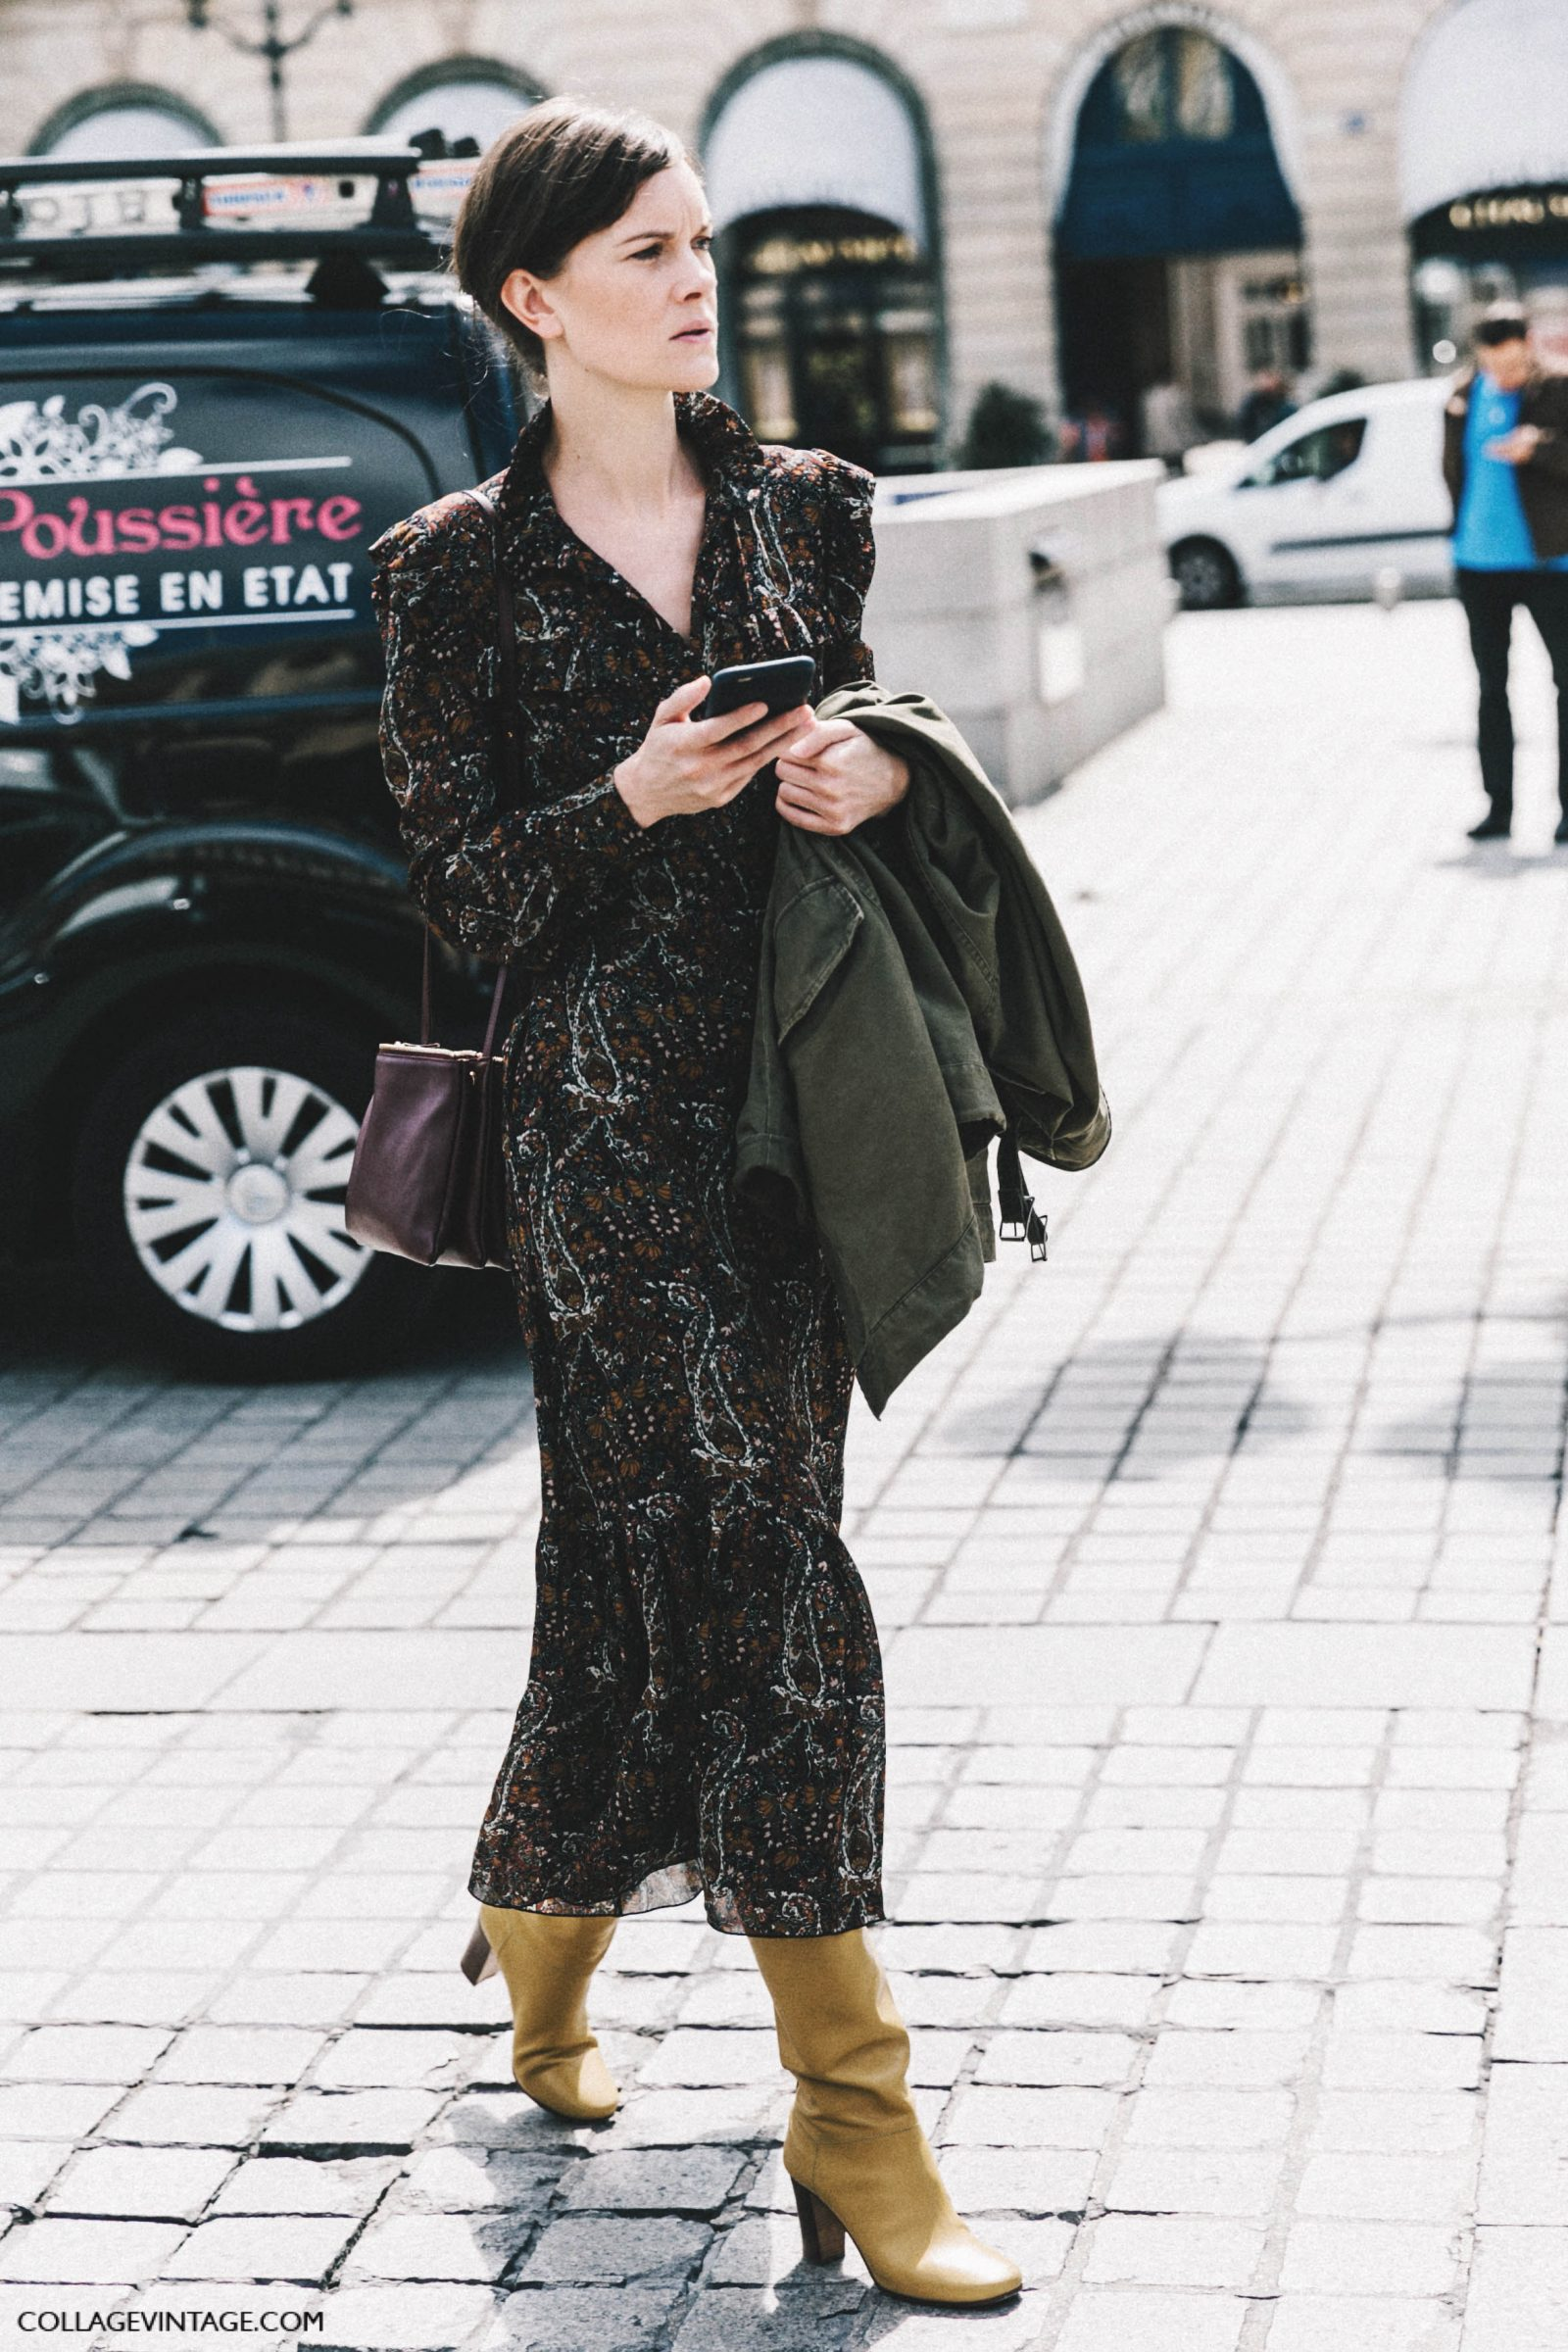 Paris_Couture_Fashion_Week-Collage_Vintage-Street_Style-46